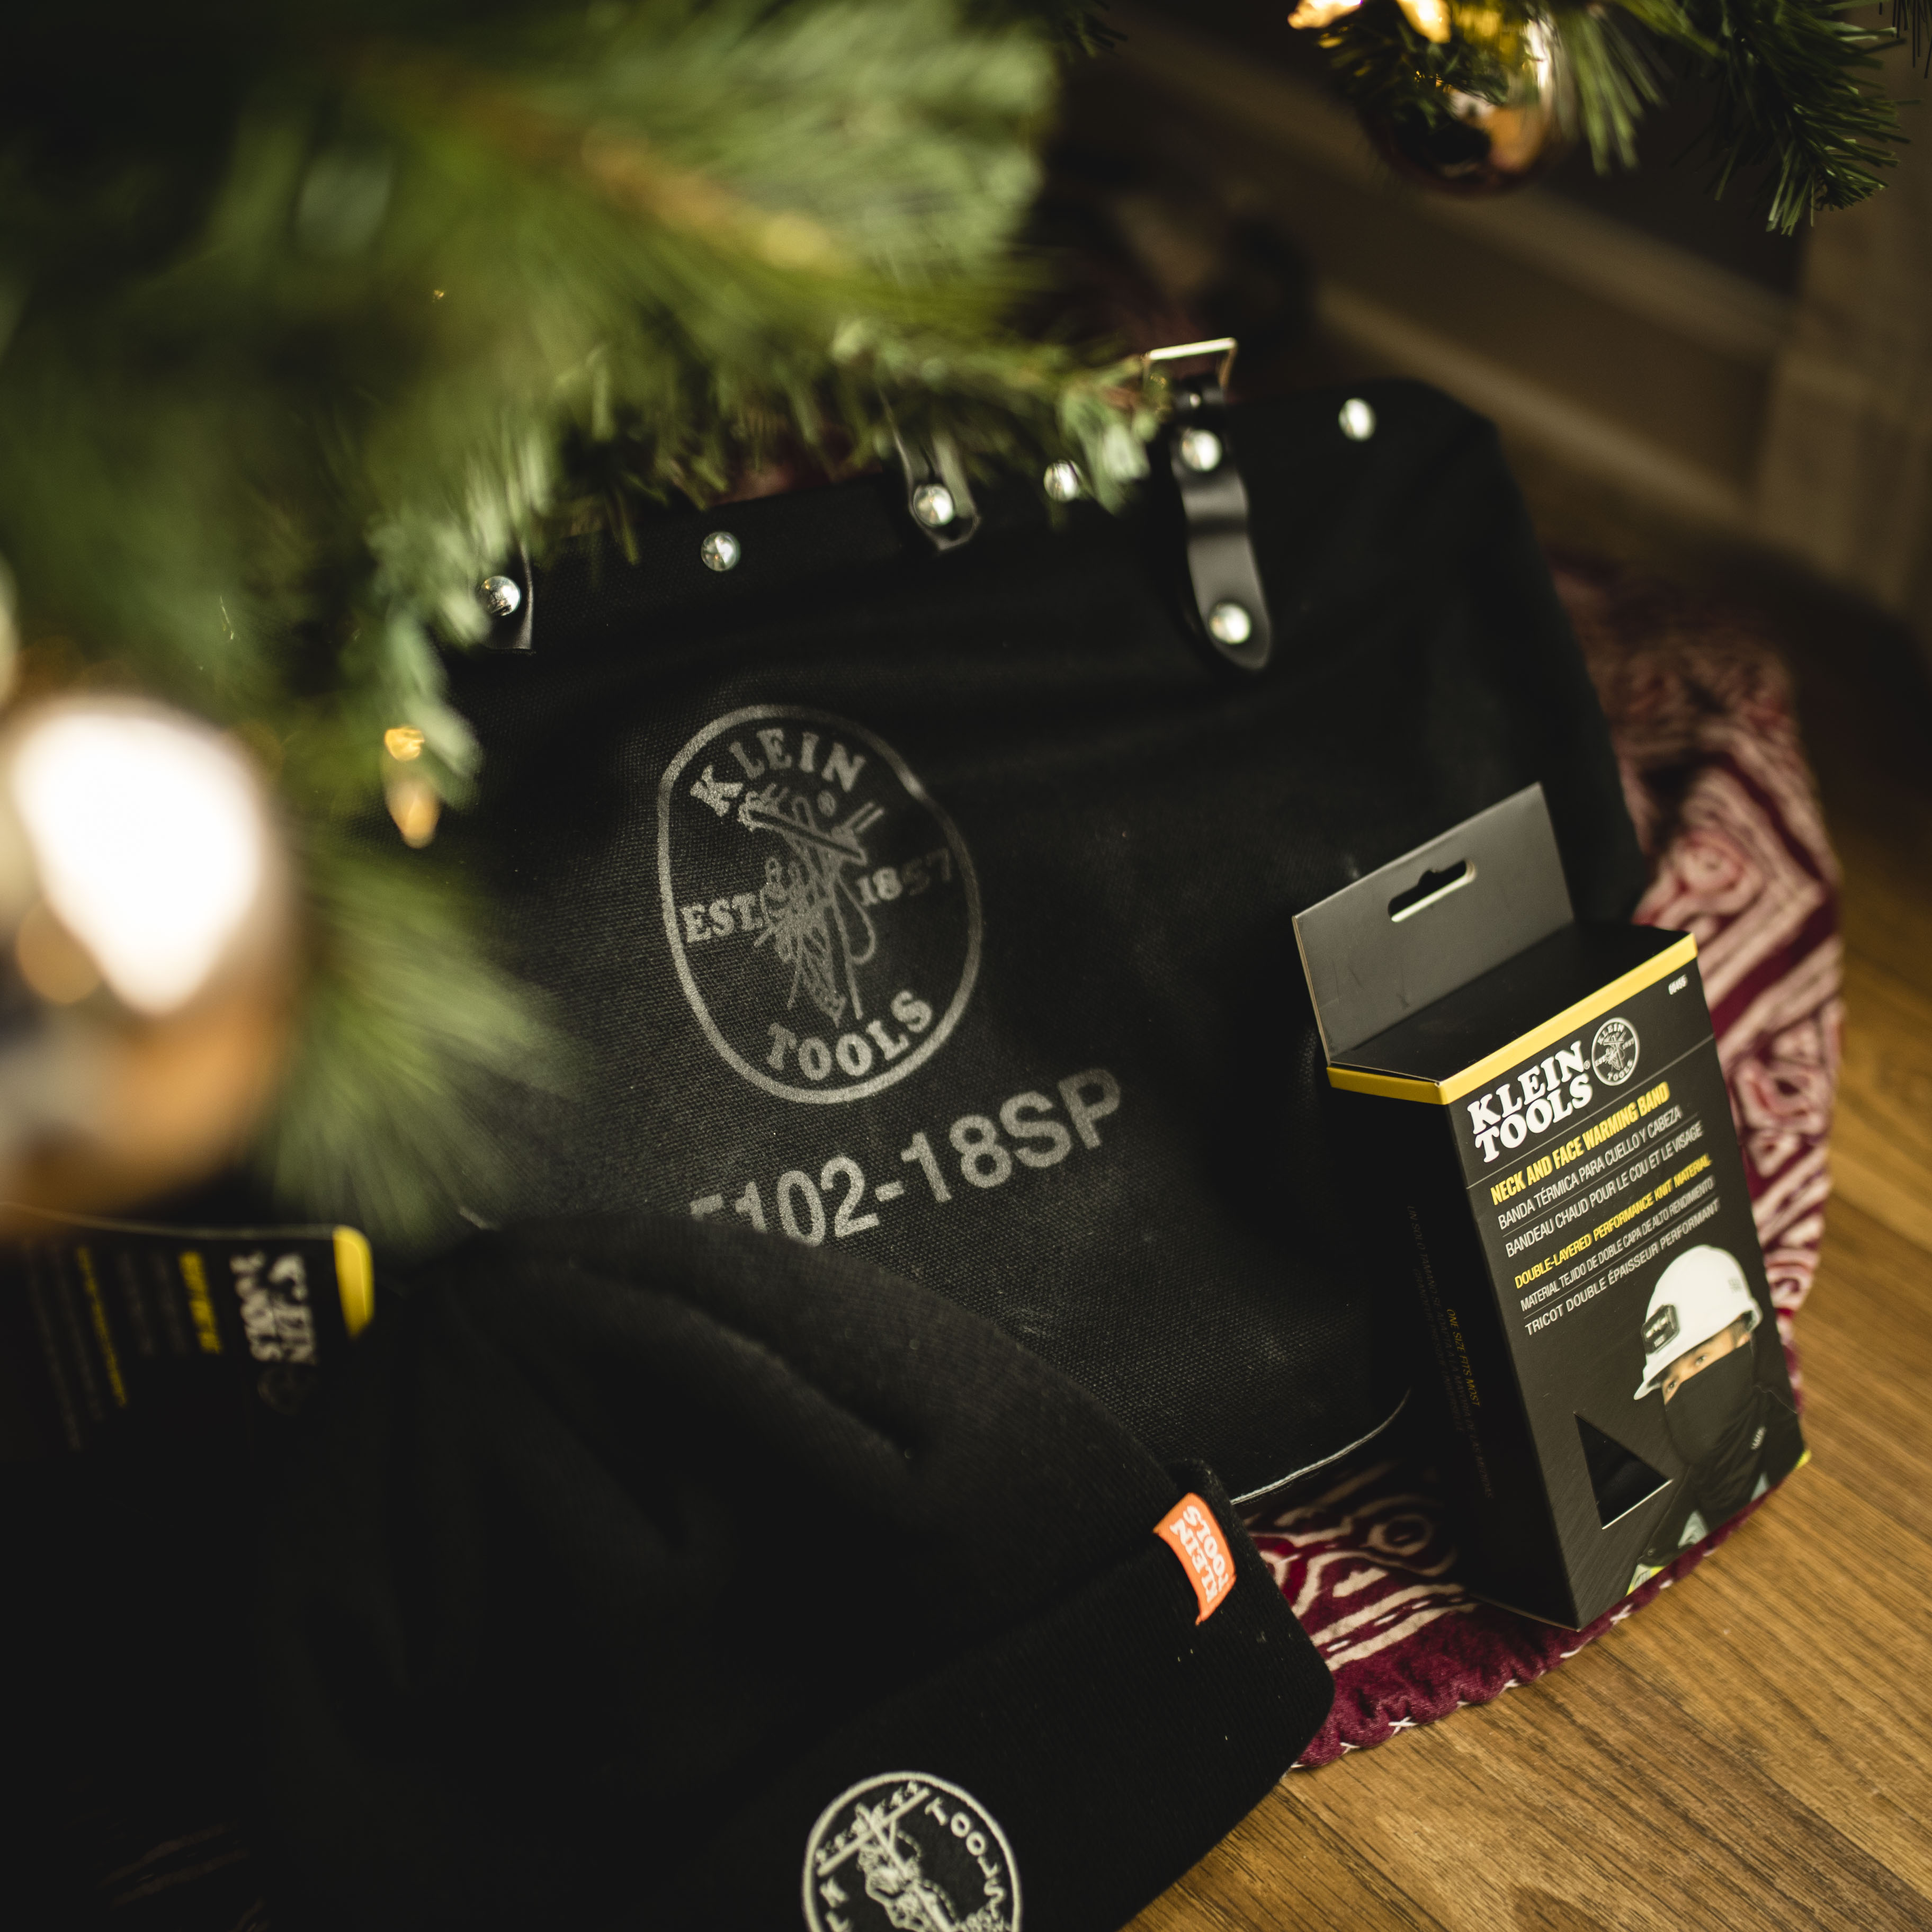 Black deluxe bag under a Christmas tree